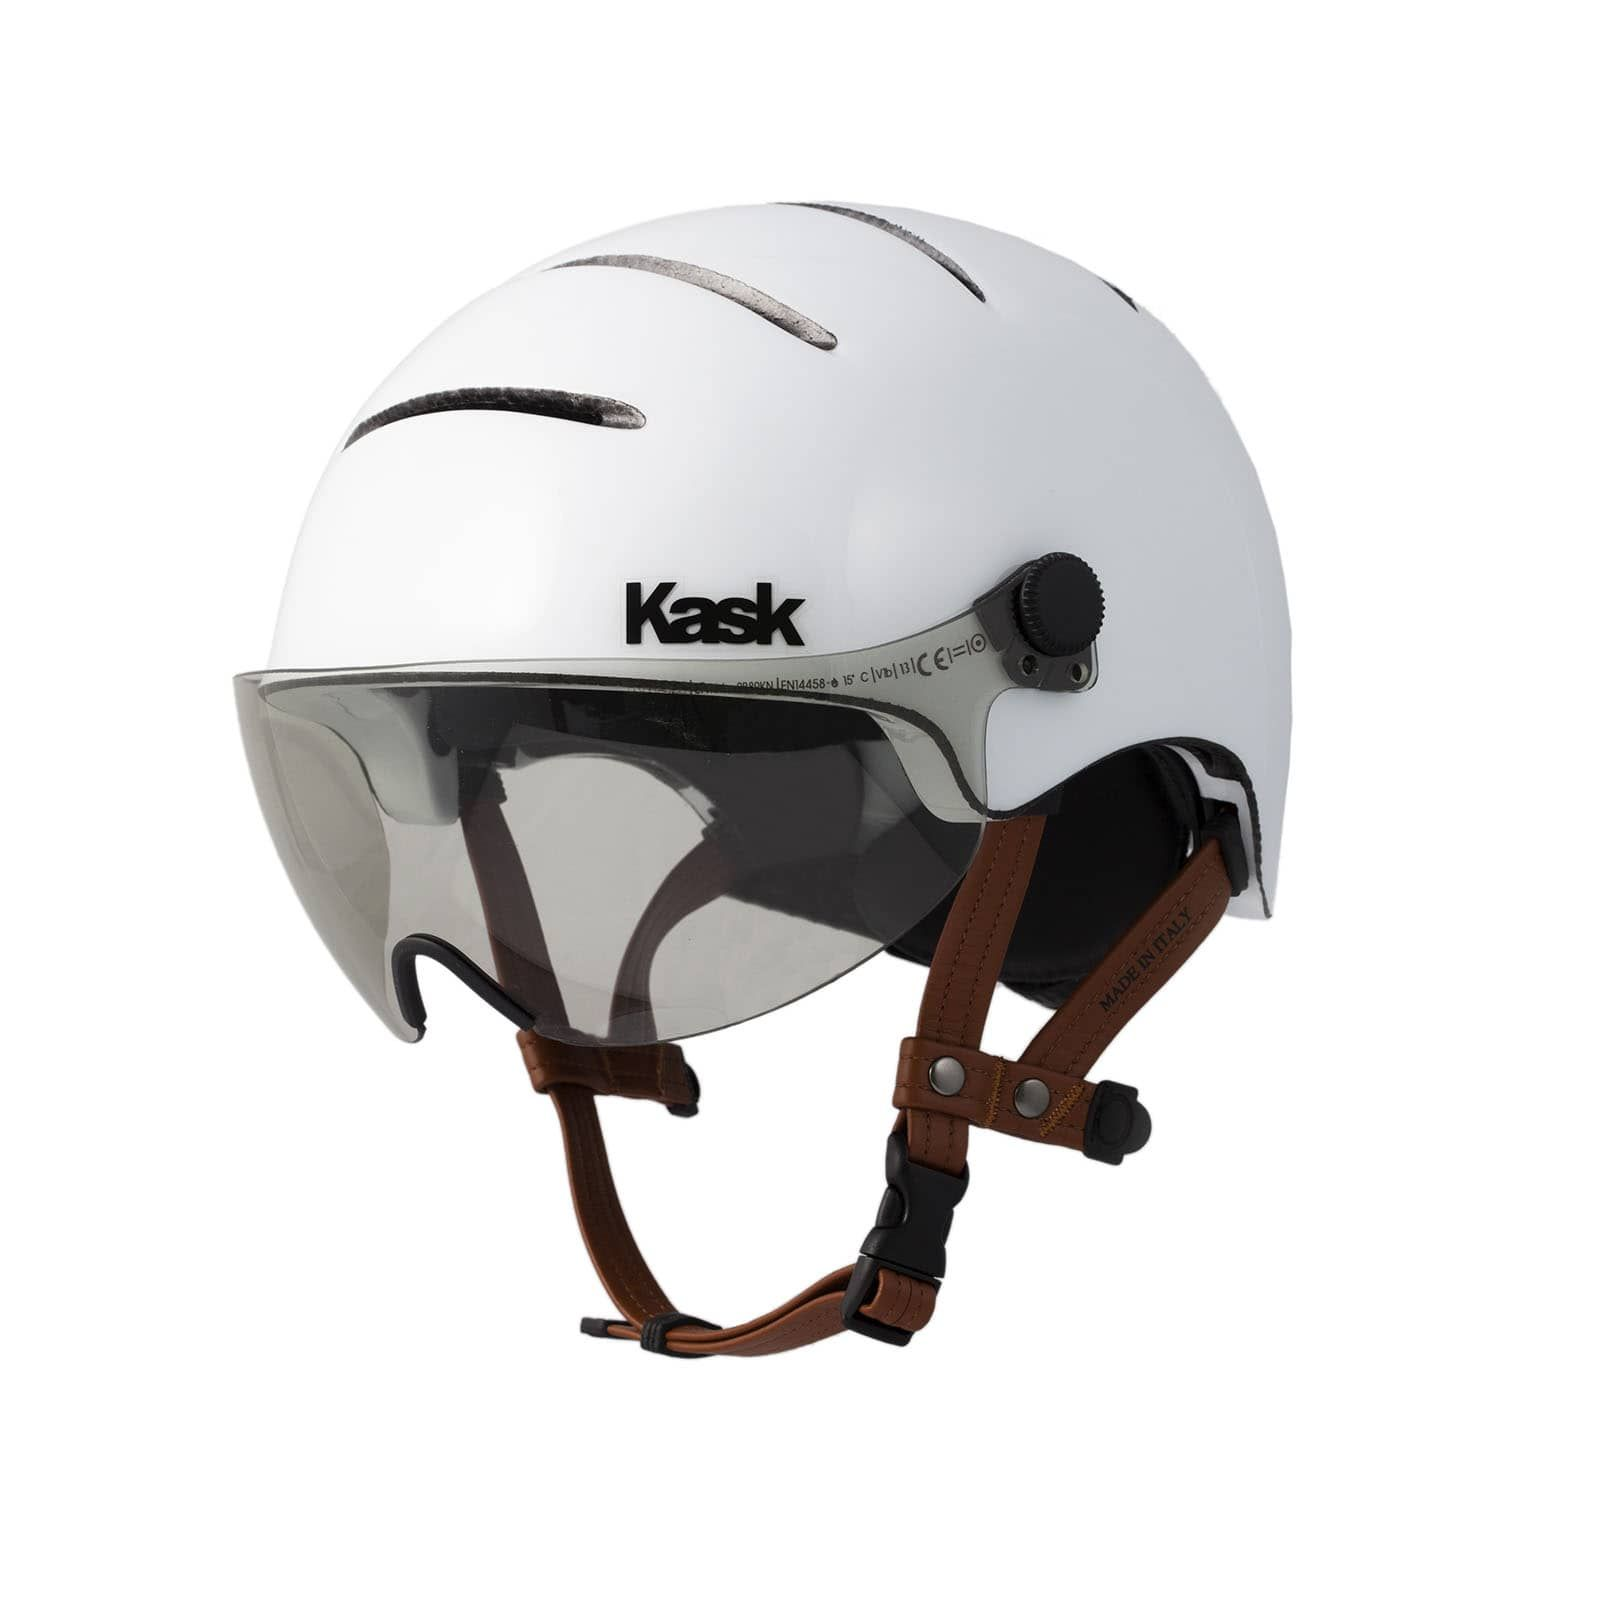 Urban Cycling Helmet With Leather Straps And Visor Lifestyle